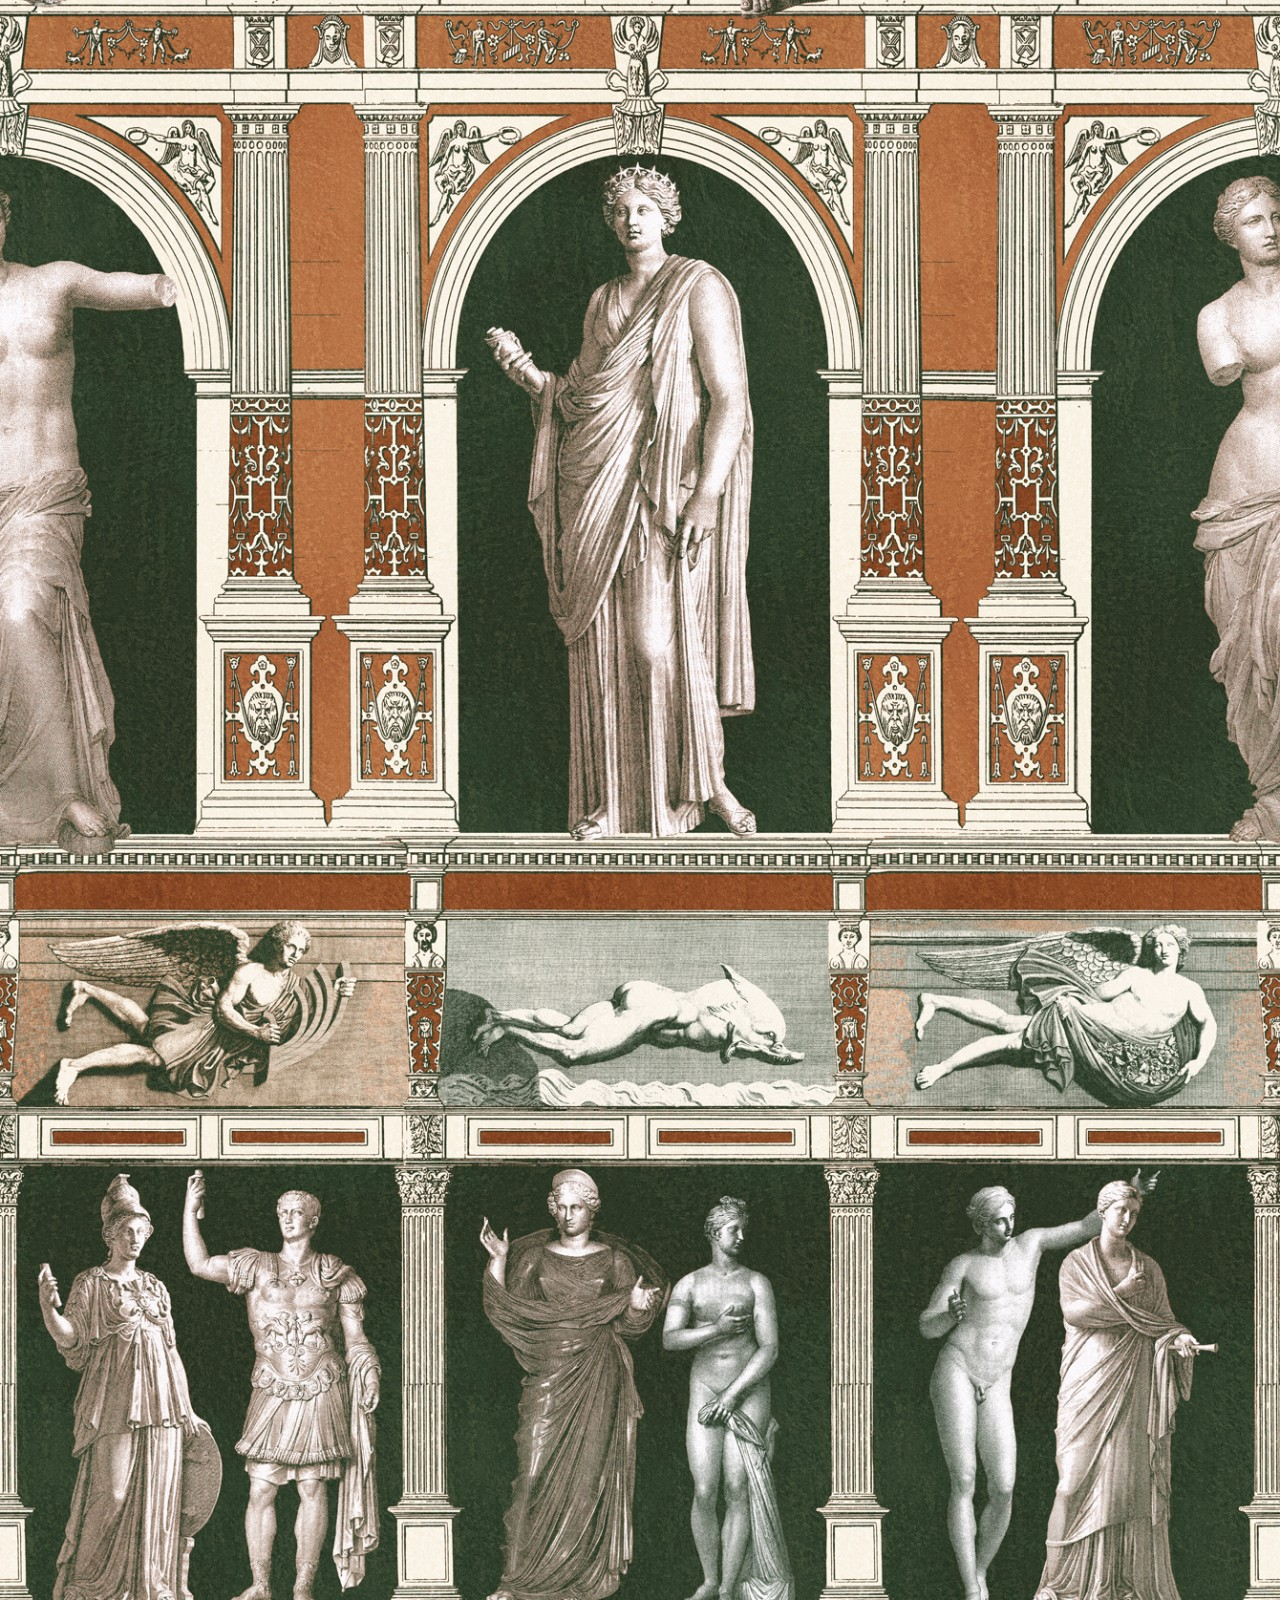 STATUES ANTIQUE Wallpaper